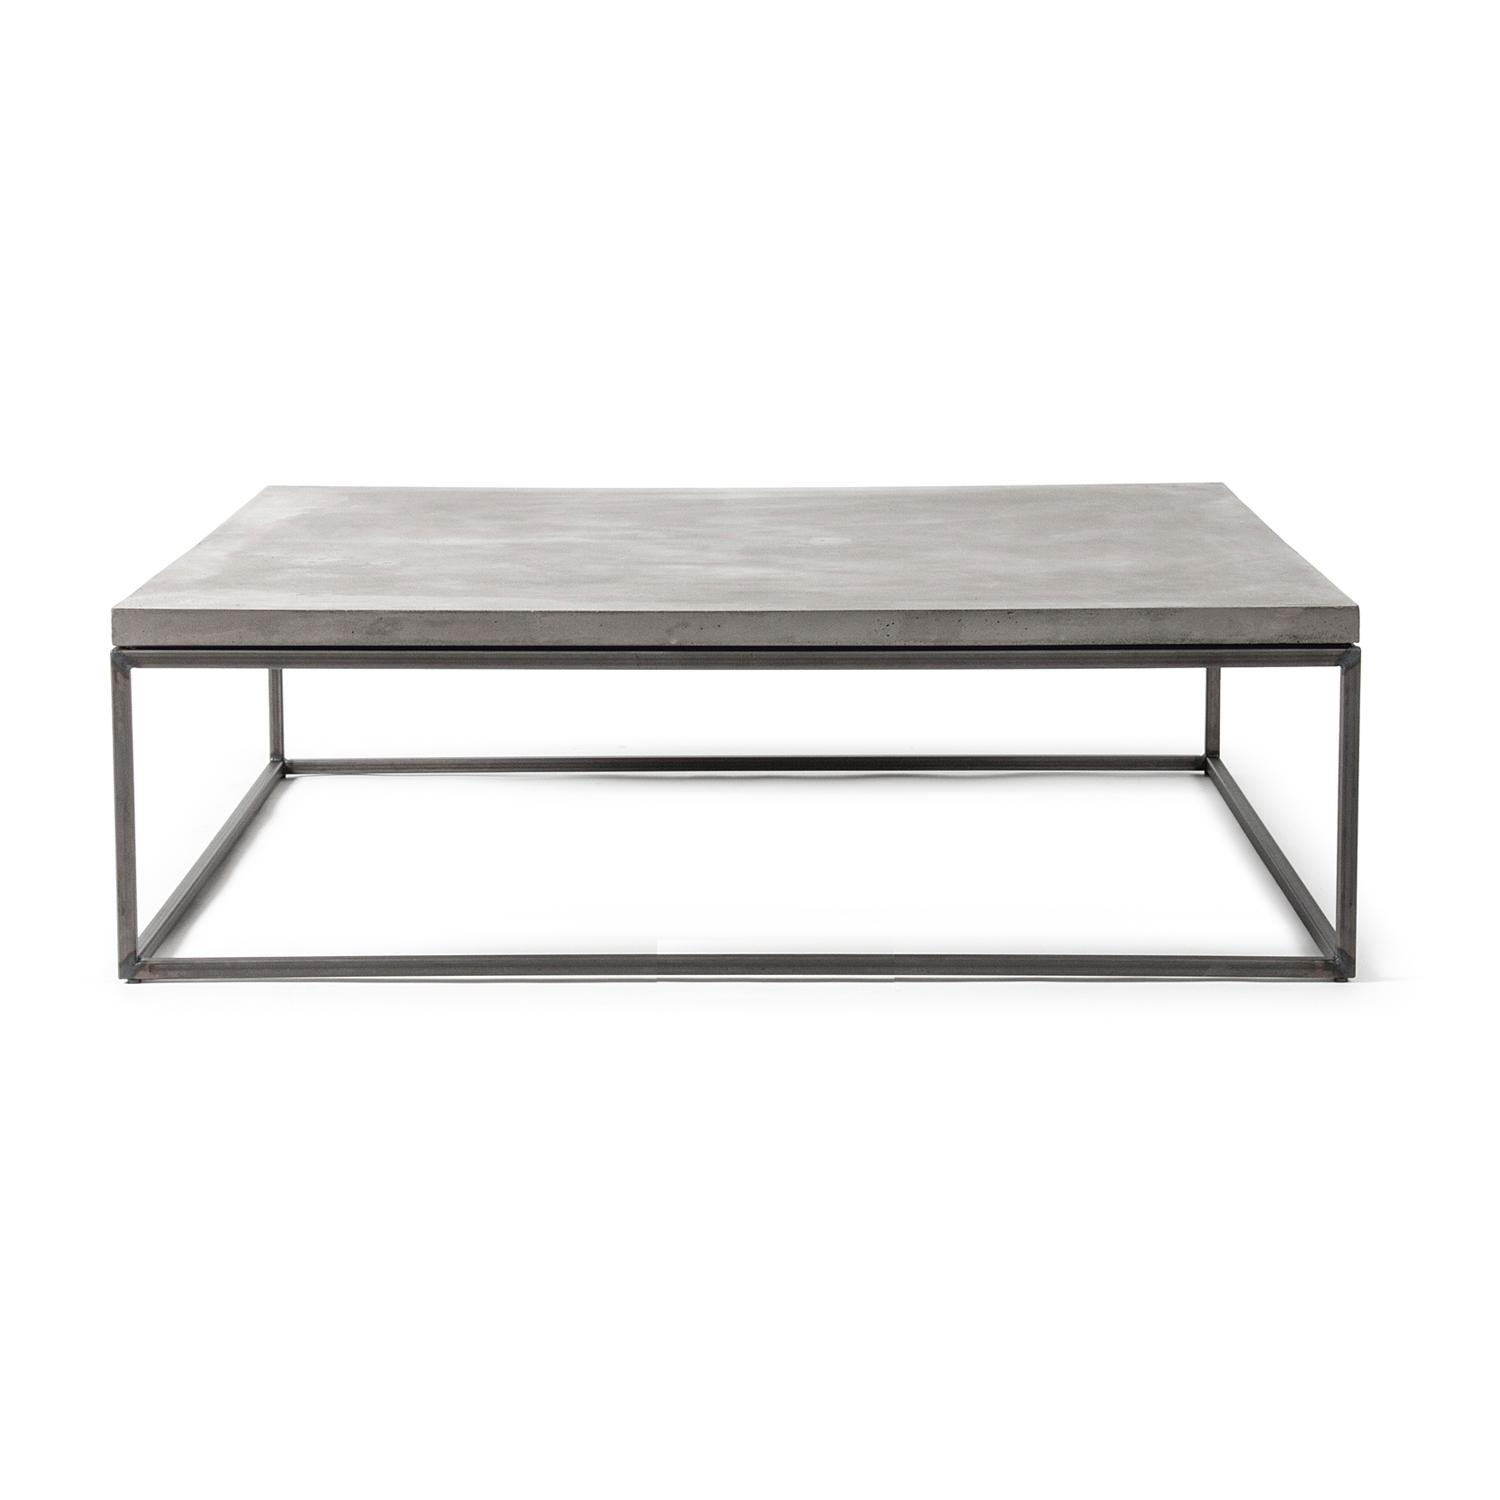 Perspective Extra Large Coffee Table Lyon Beton Rypen